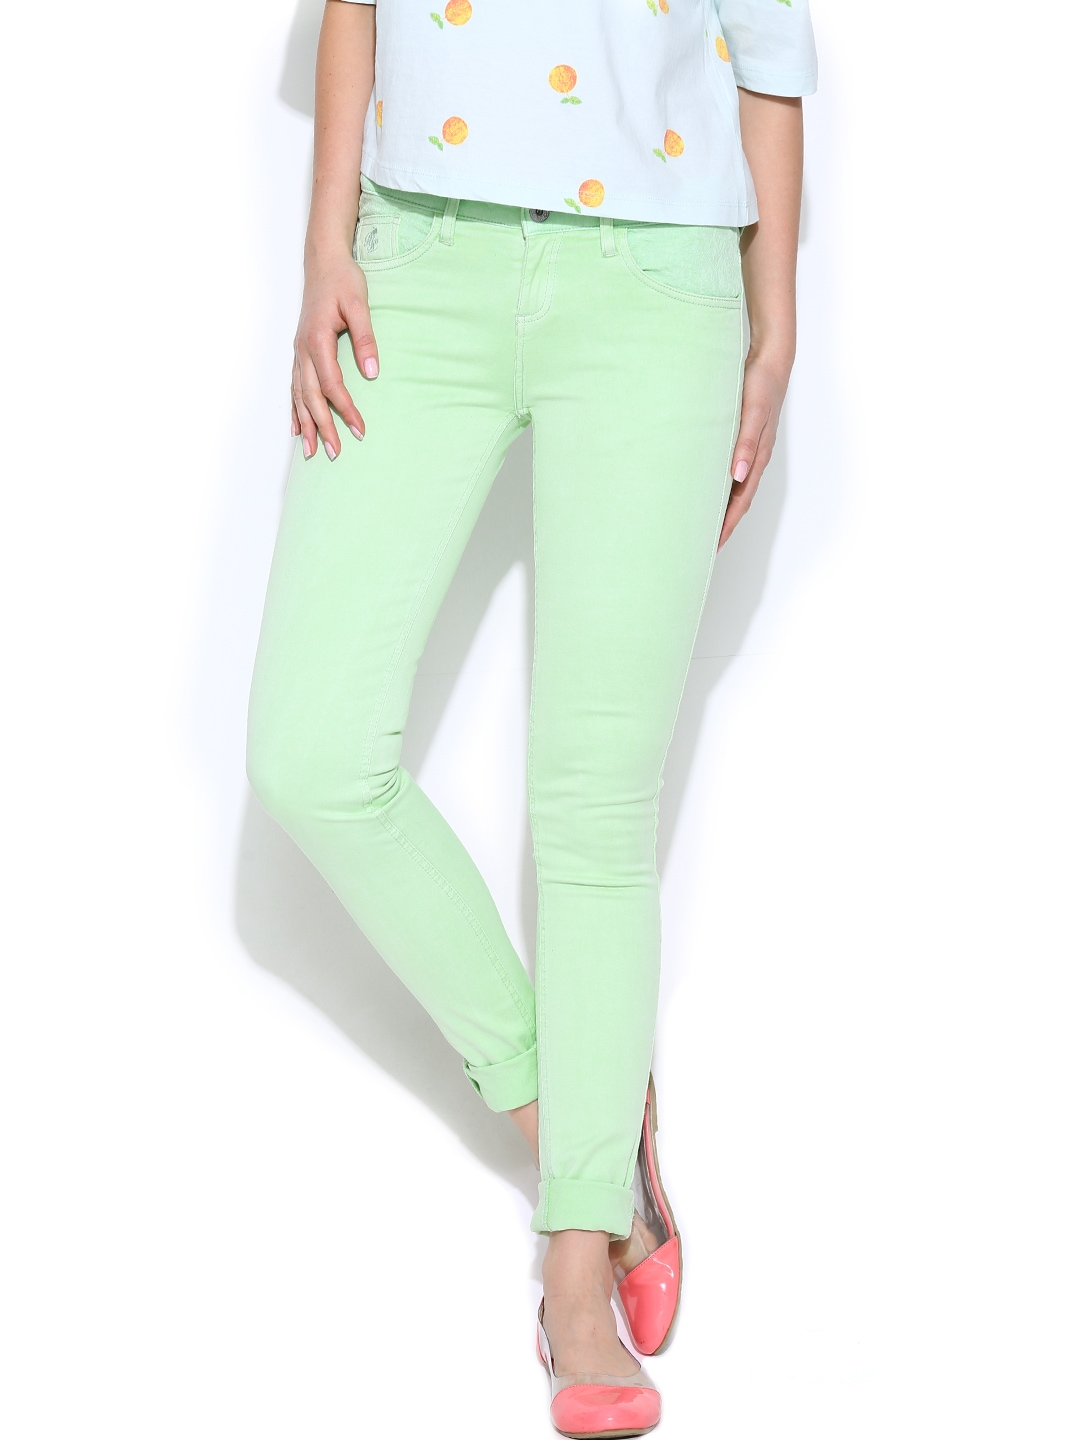 Perfect Spring In Every Season Jeans In Mint For Women  Dawoob Women